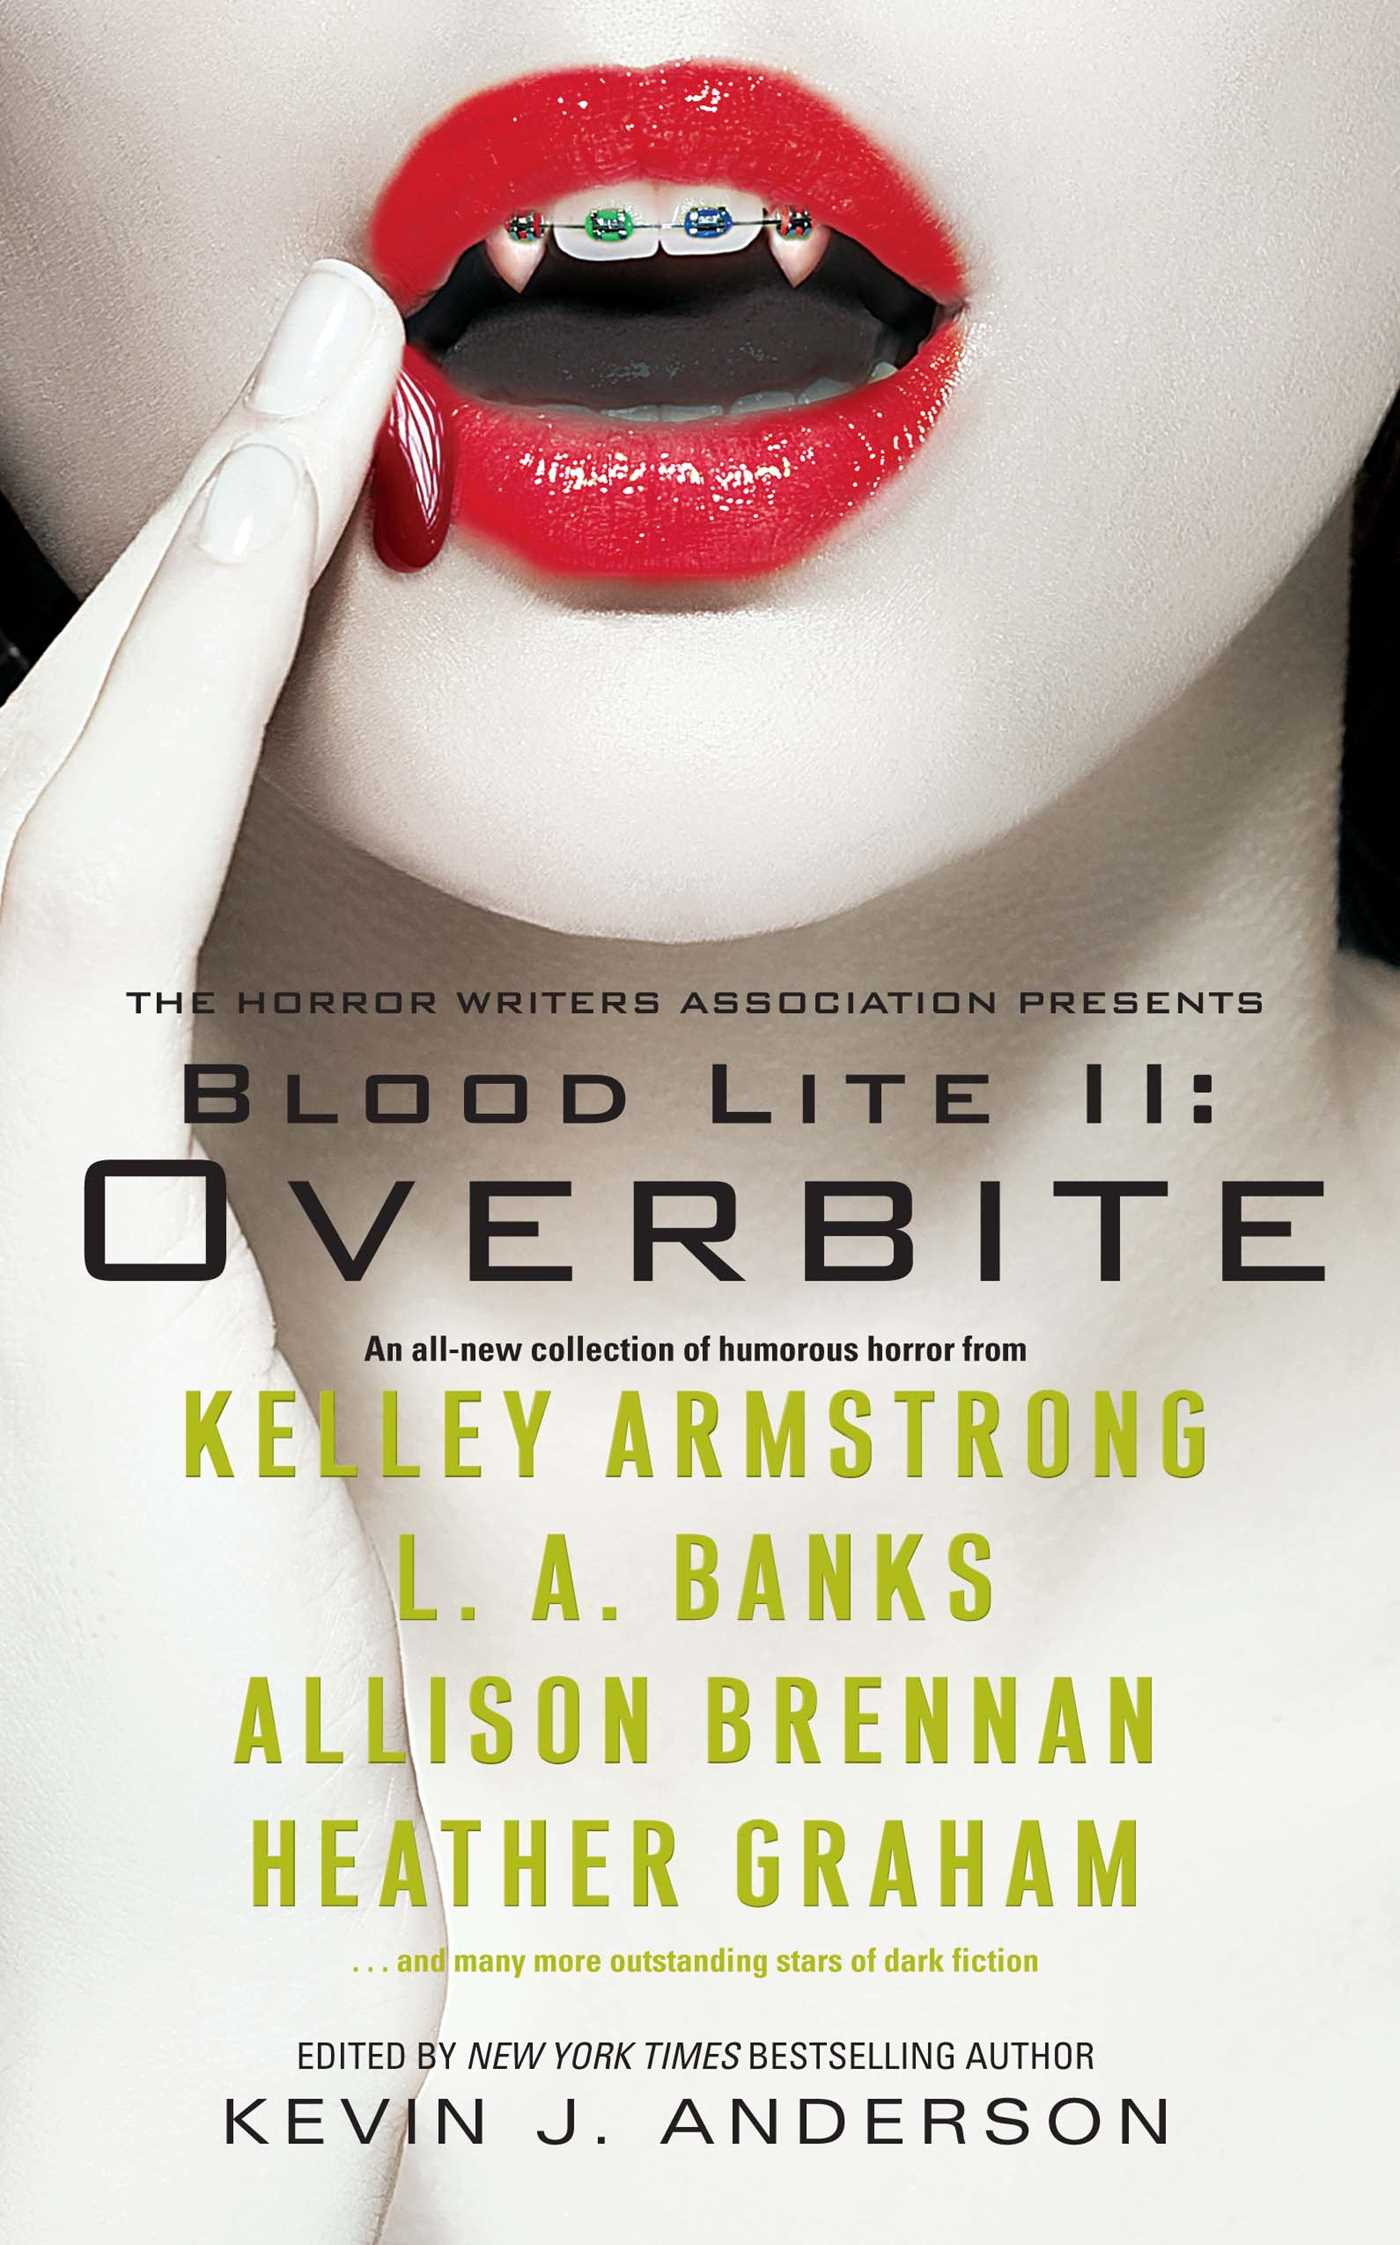 Blood-lite-ii-overbite-9781439187708_hr